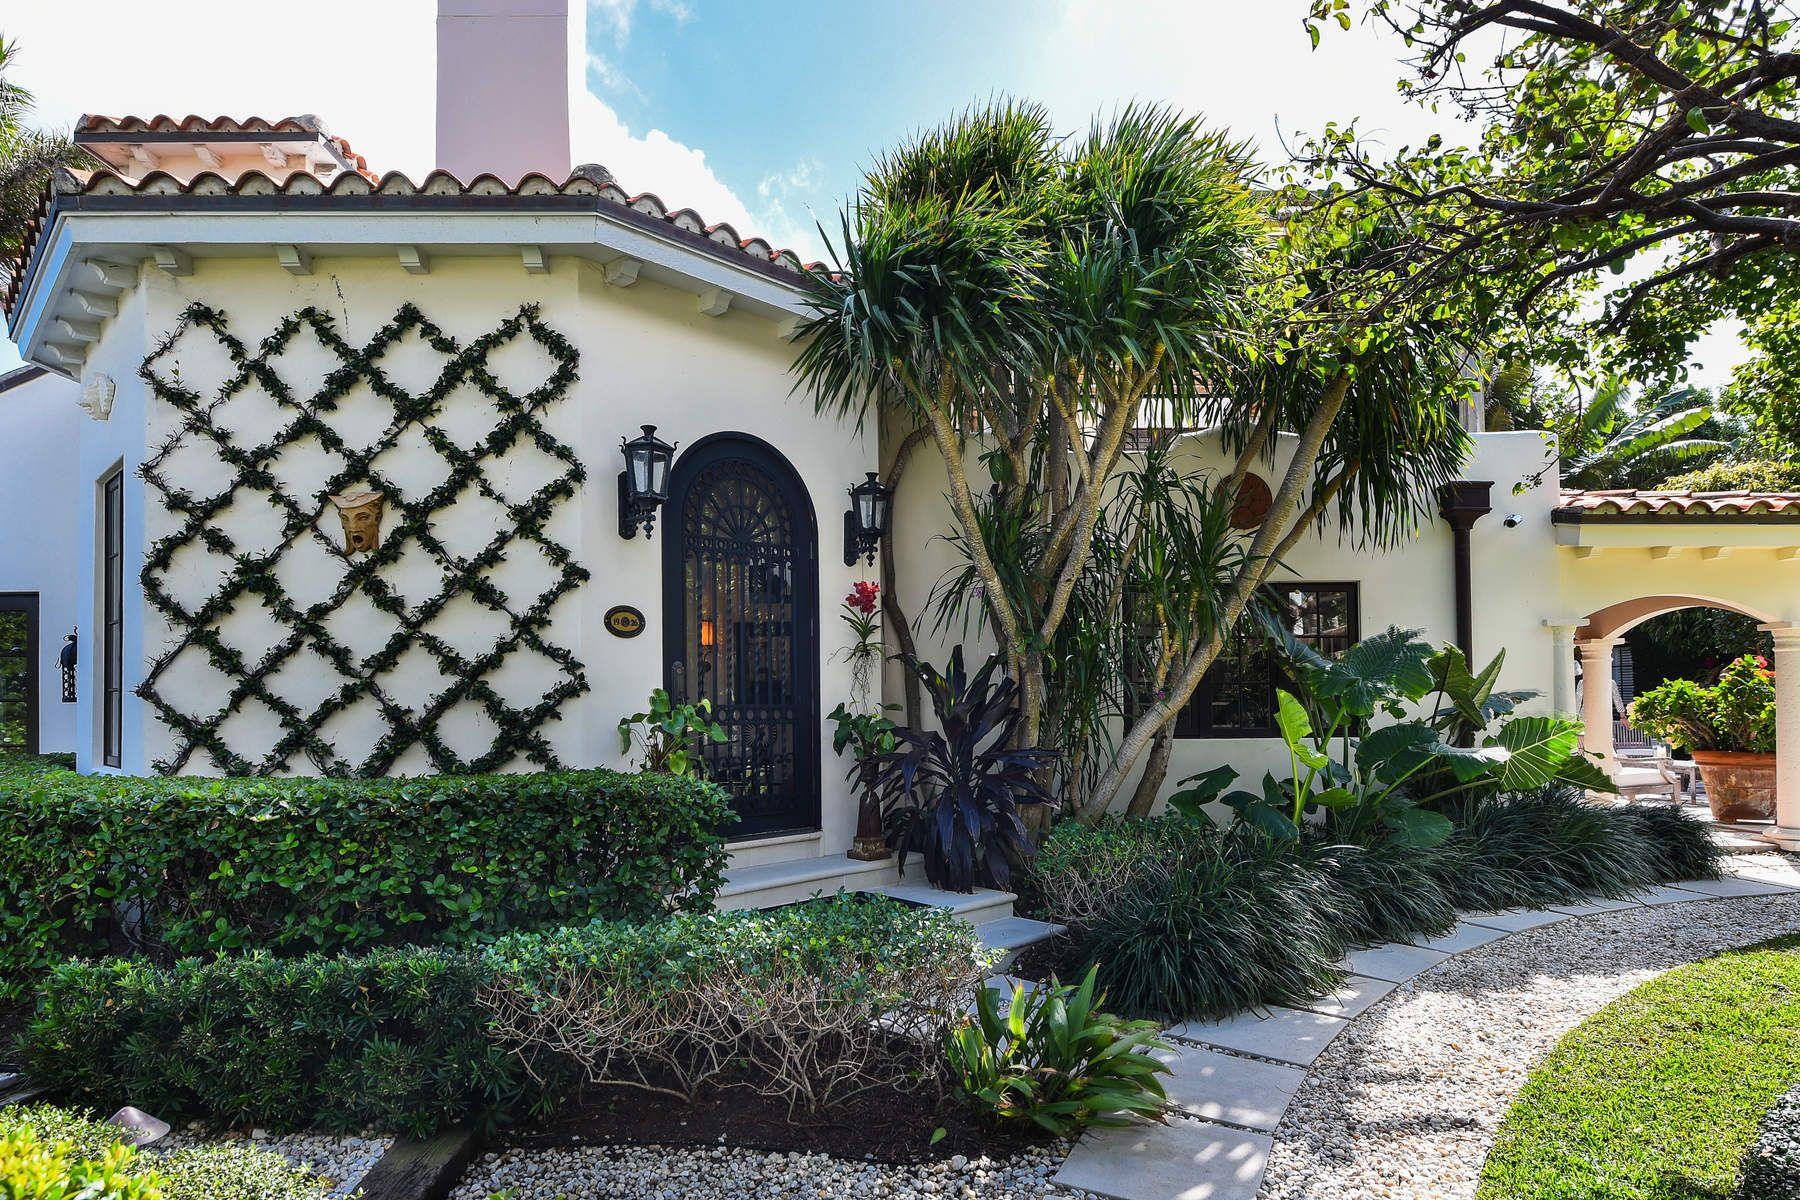 Single Family Home for Active at Stunning Mediterranean Waterfront Home 2701 S Flagler Dr West Palm Beach, Florida 33405 United States